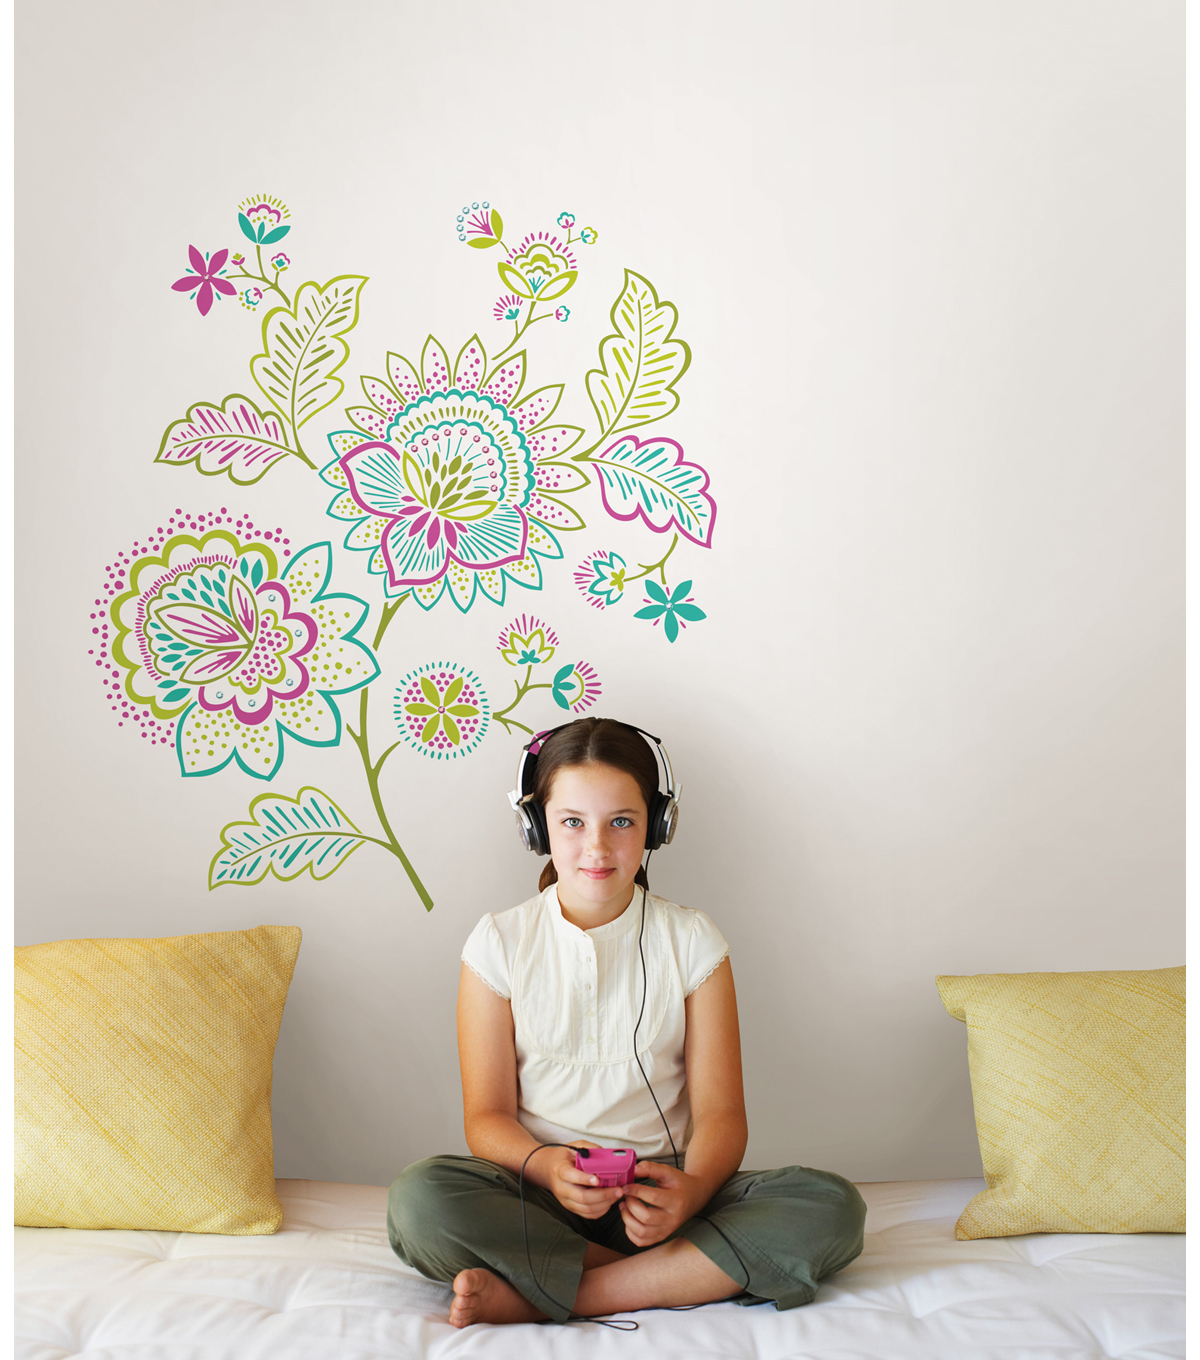 Wall Pops Delia Wall Art Decal Kit, 14 Piece Set